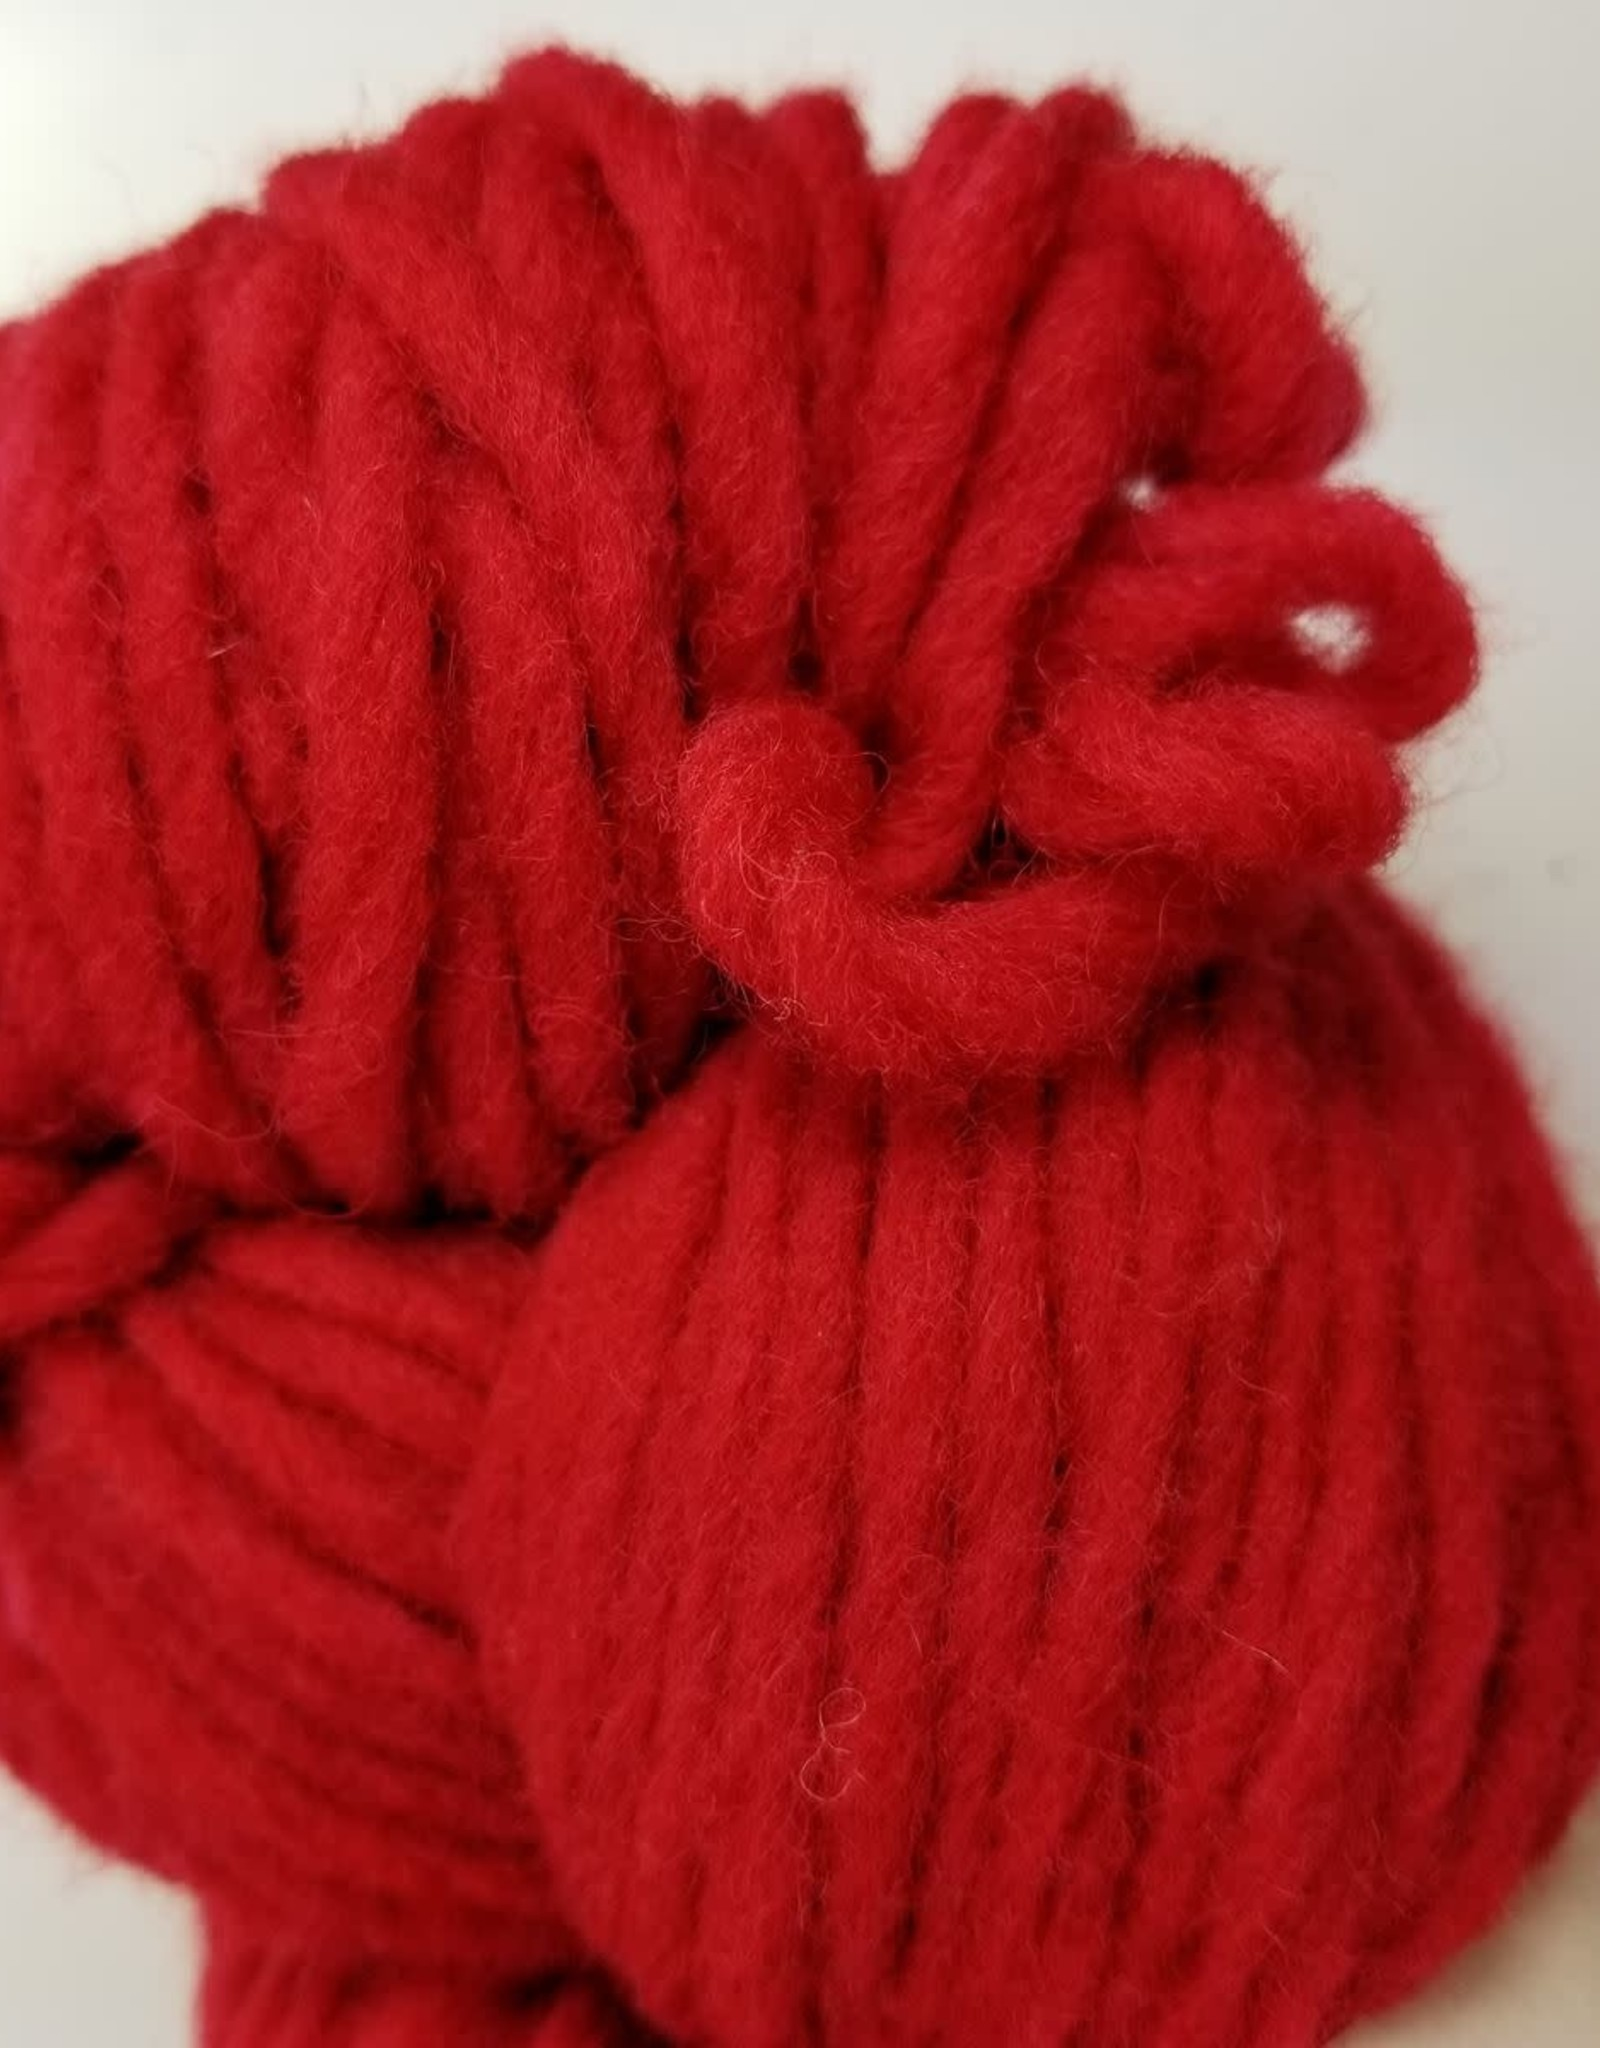 CWM Soft Spun Lopi 4oz 16 red